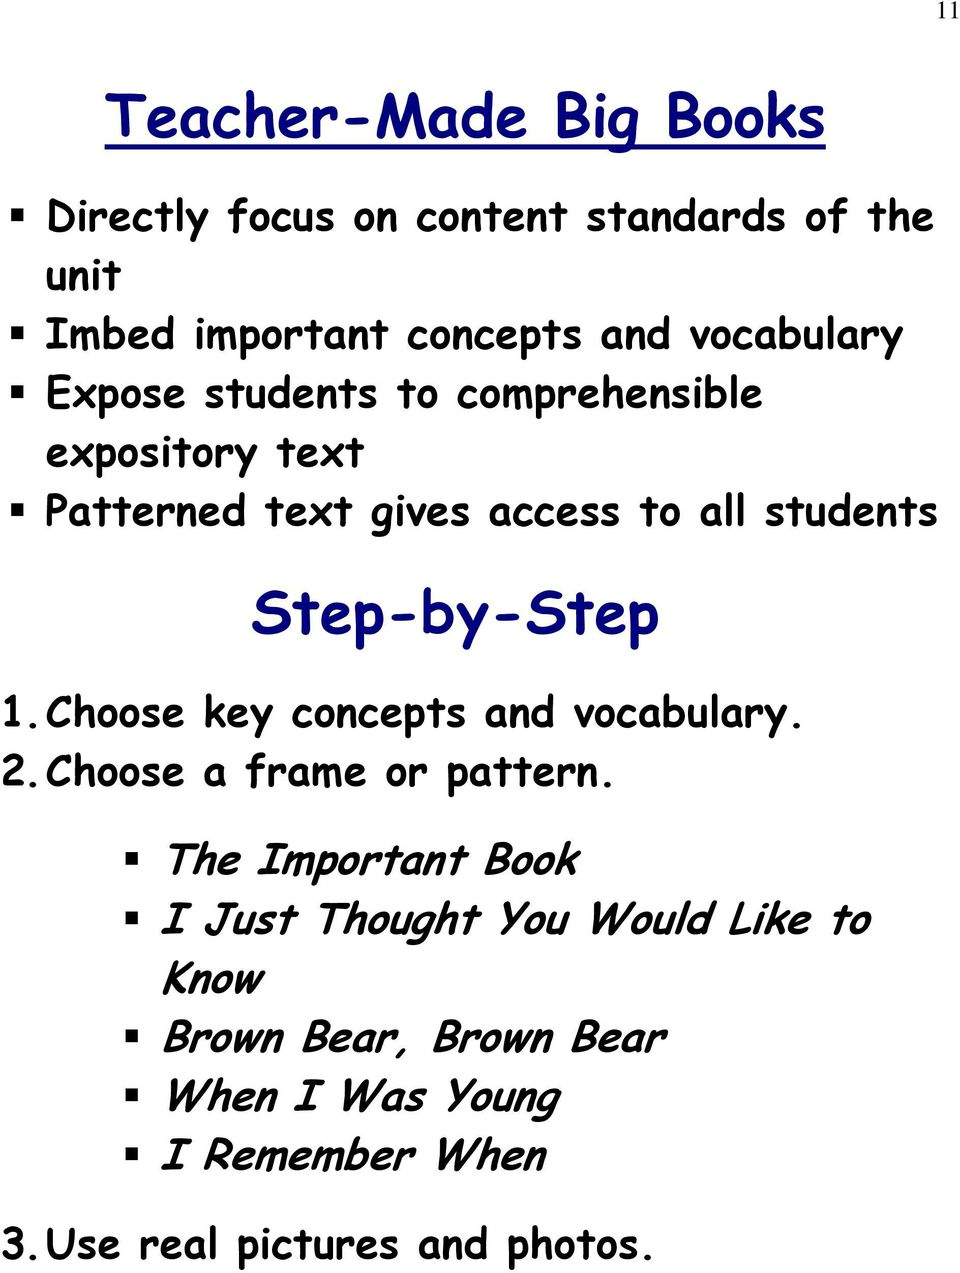 Step-by-Step 1. Choose key concepts and vocabulary. 2. Choose a frame or pattern.